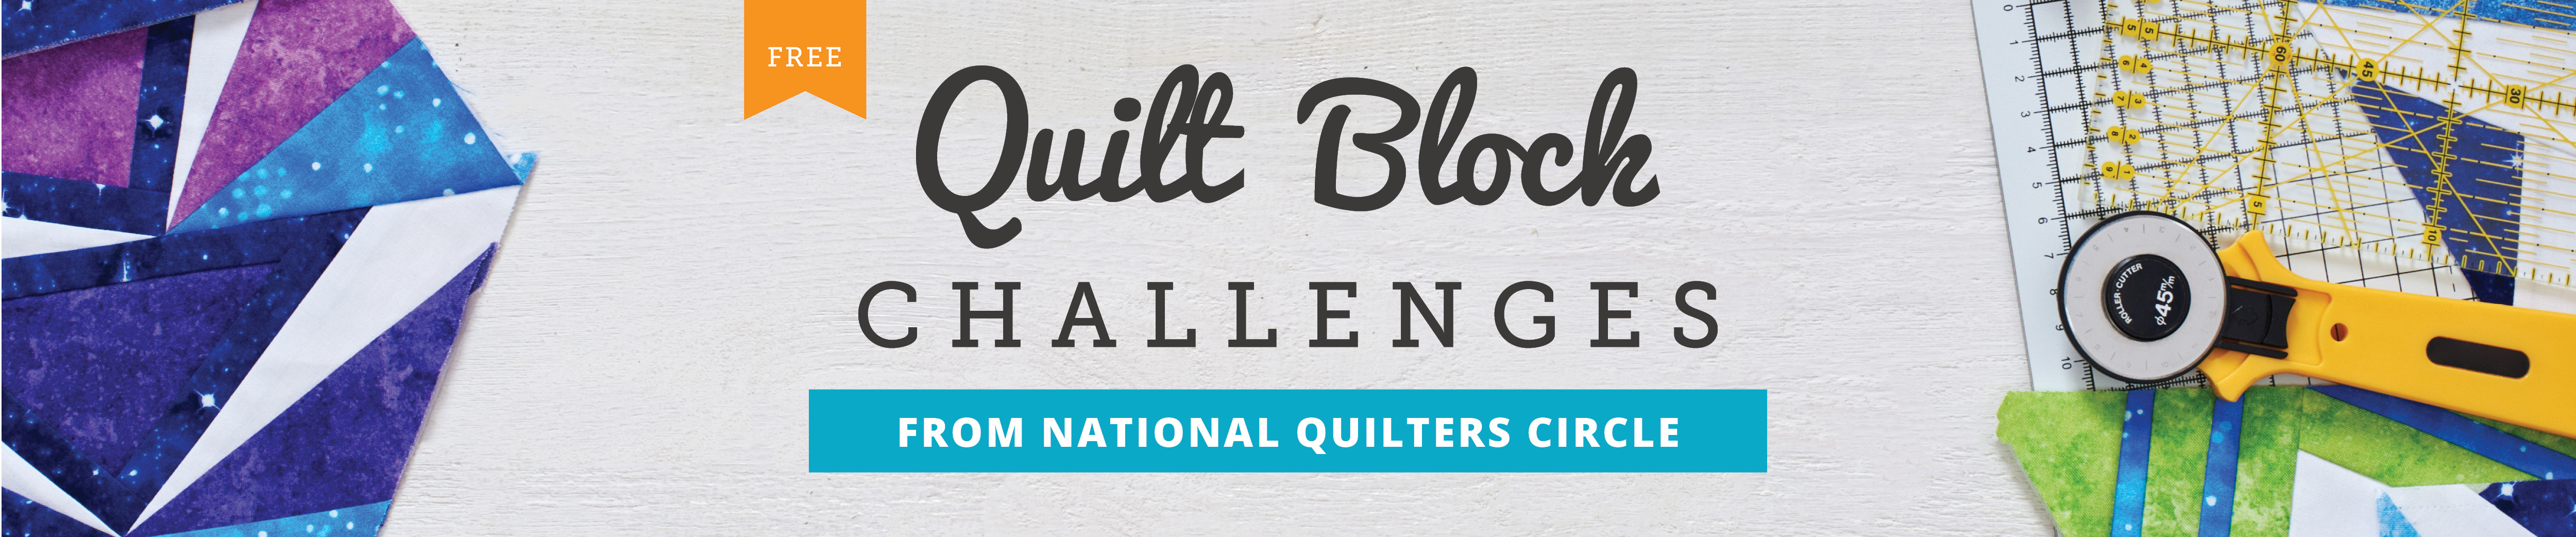 Free Quilt Block Challenges from National Quilters Circle